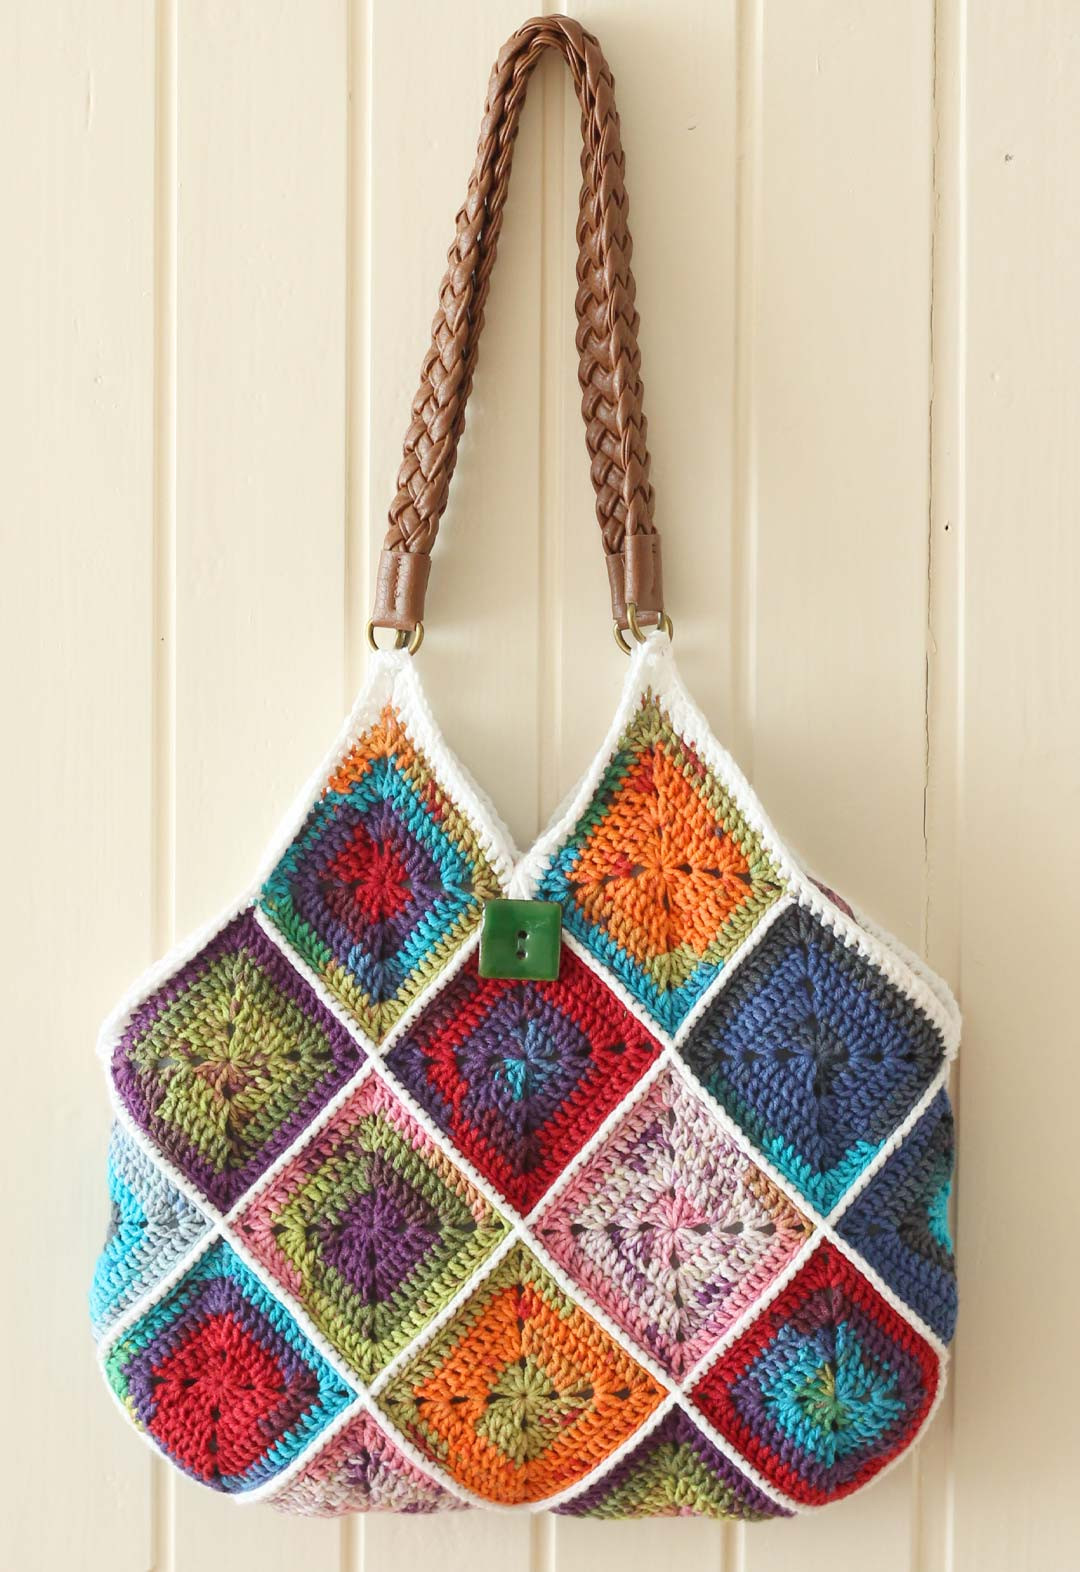 Crochet Purse Beautiful Free Pattern Squares Bag A Creative Being Of Top 48 Images Crochet Purse